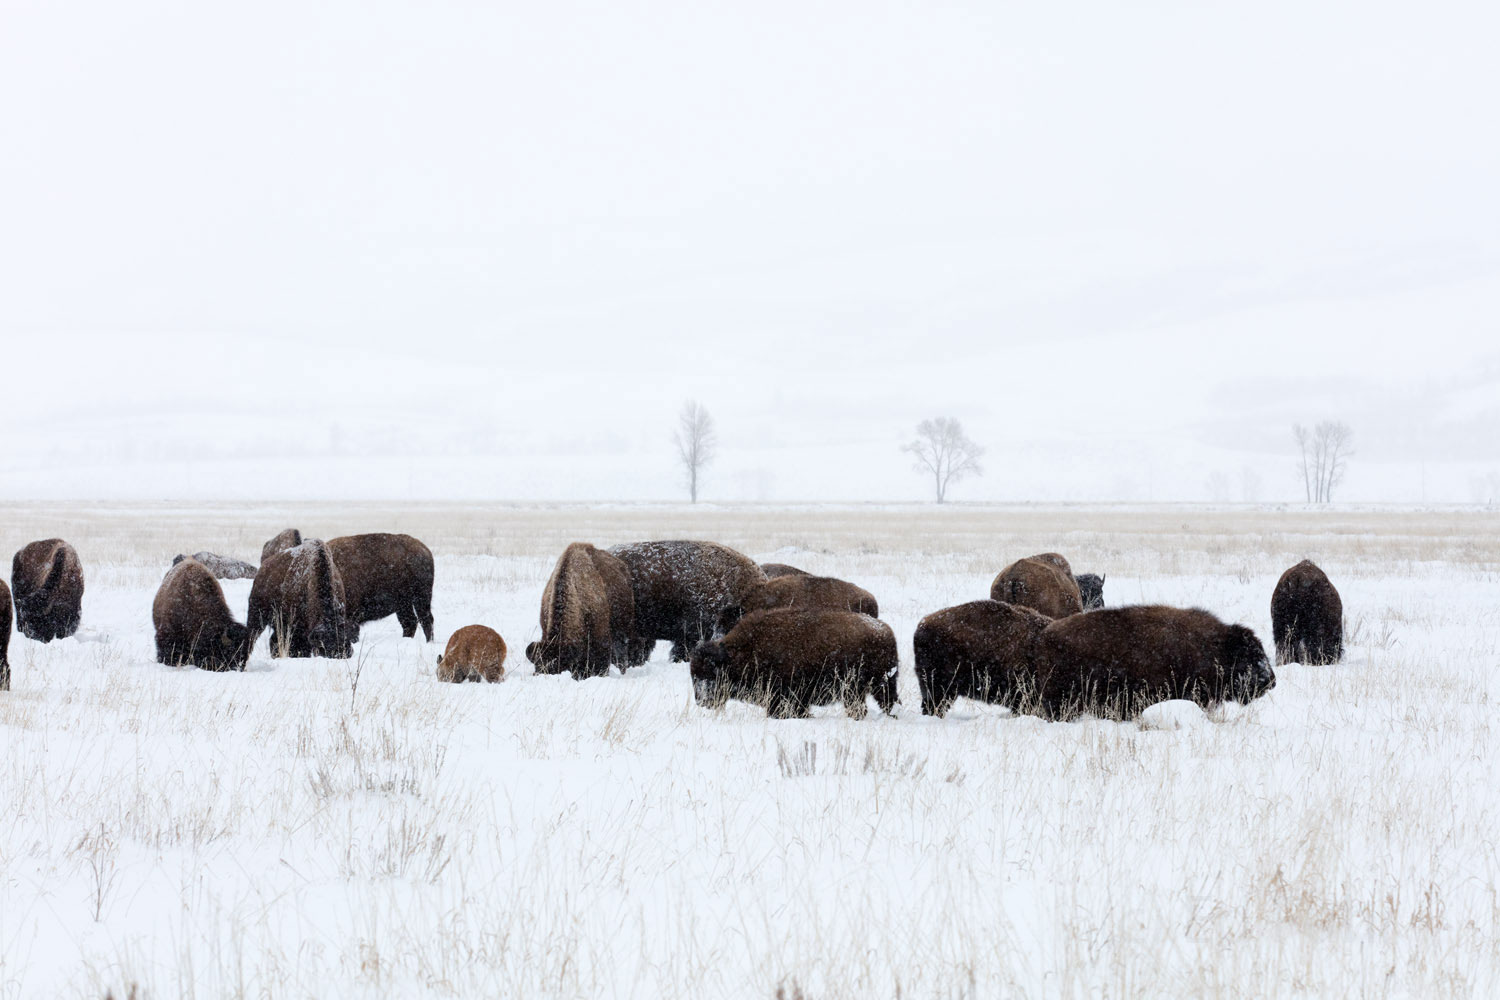 grand teton, bison, winter, december 2015, photograph, image, Tetons, photo